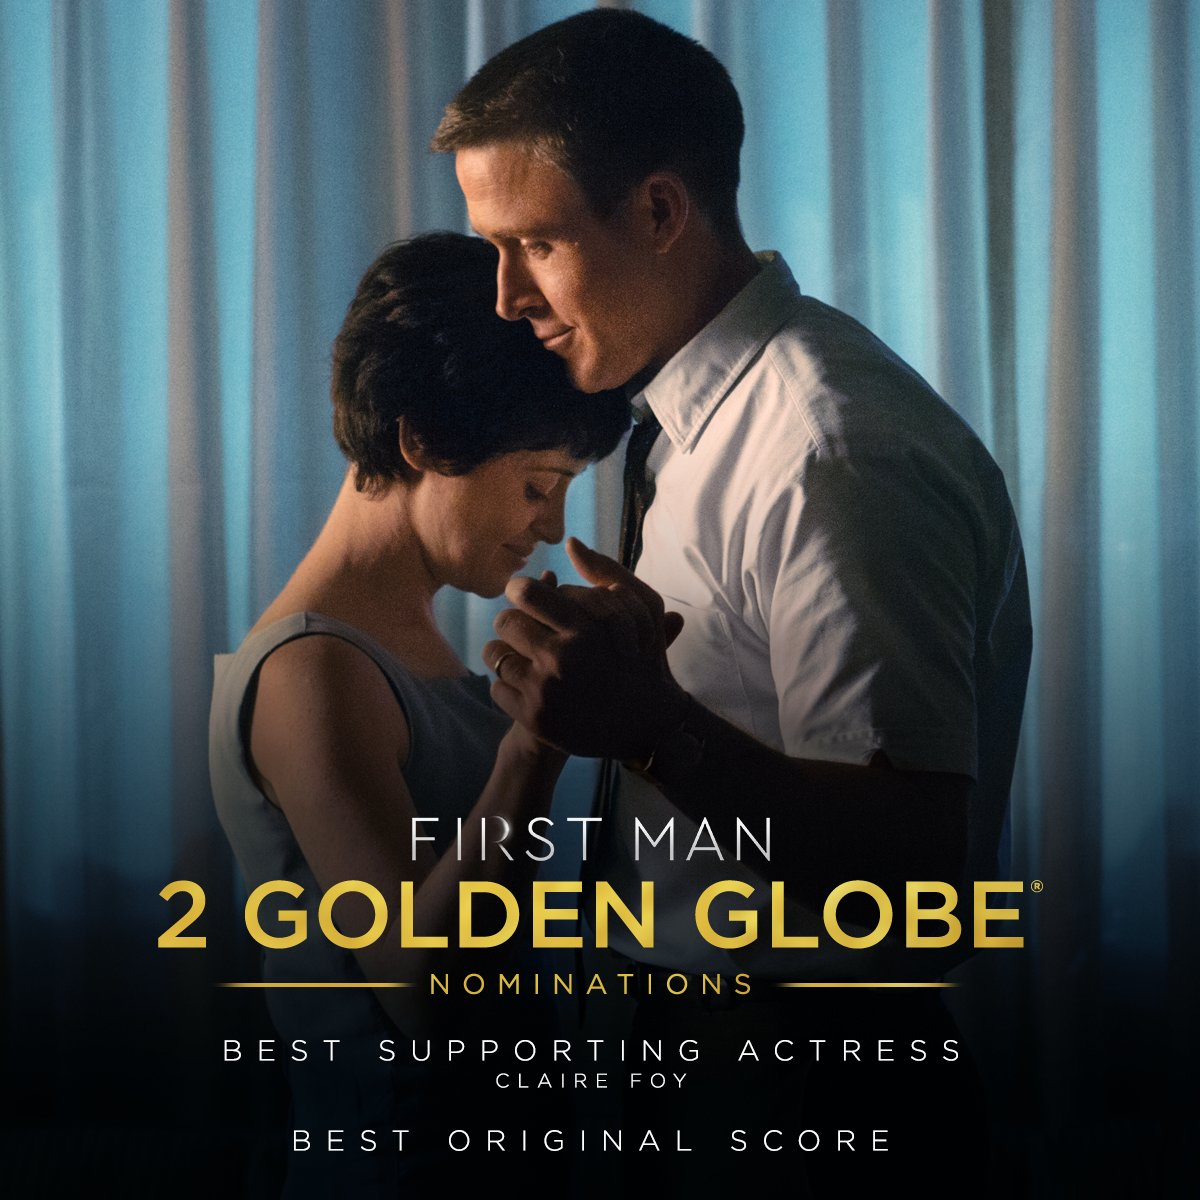 #FirstMan has been nominated for 2 #GoldenGlobes including Best Supporting Actress - Claire Foy and Best Original Score - Justin Hurwitz.